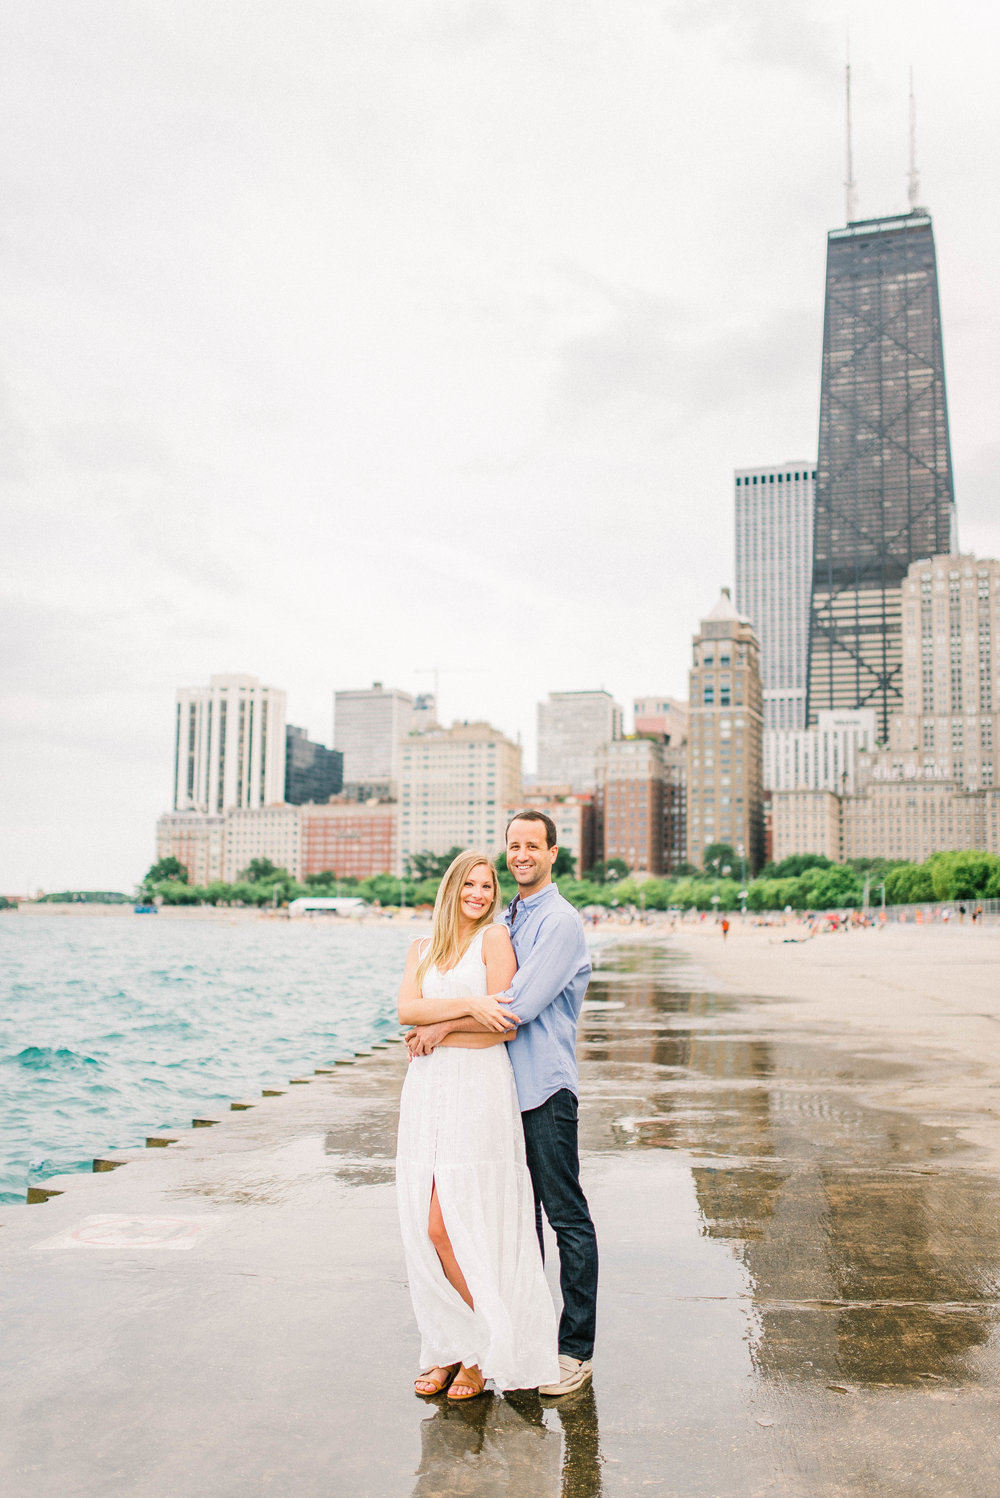 Indianapolis Engagement Photographers Serving Indiana, Chicago, as well as US and International Destination Locations World Wide | www.katmariepad.com